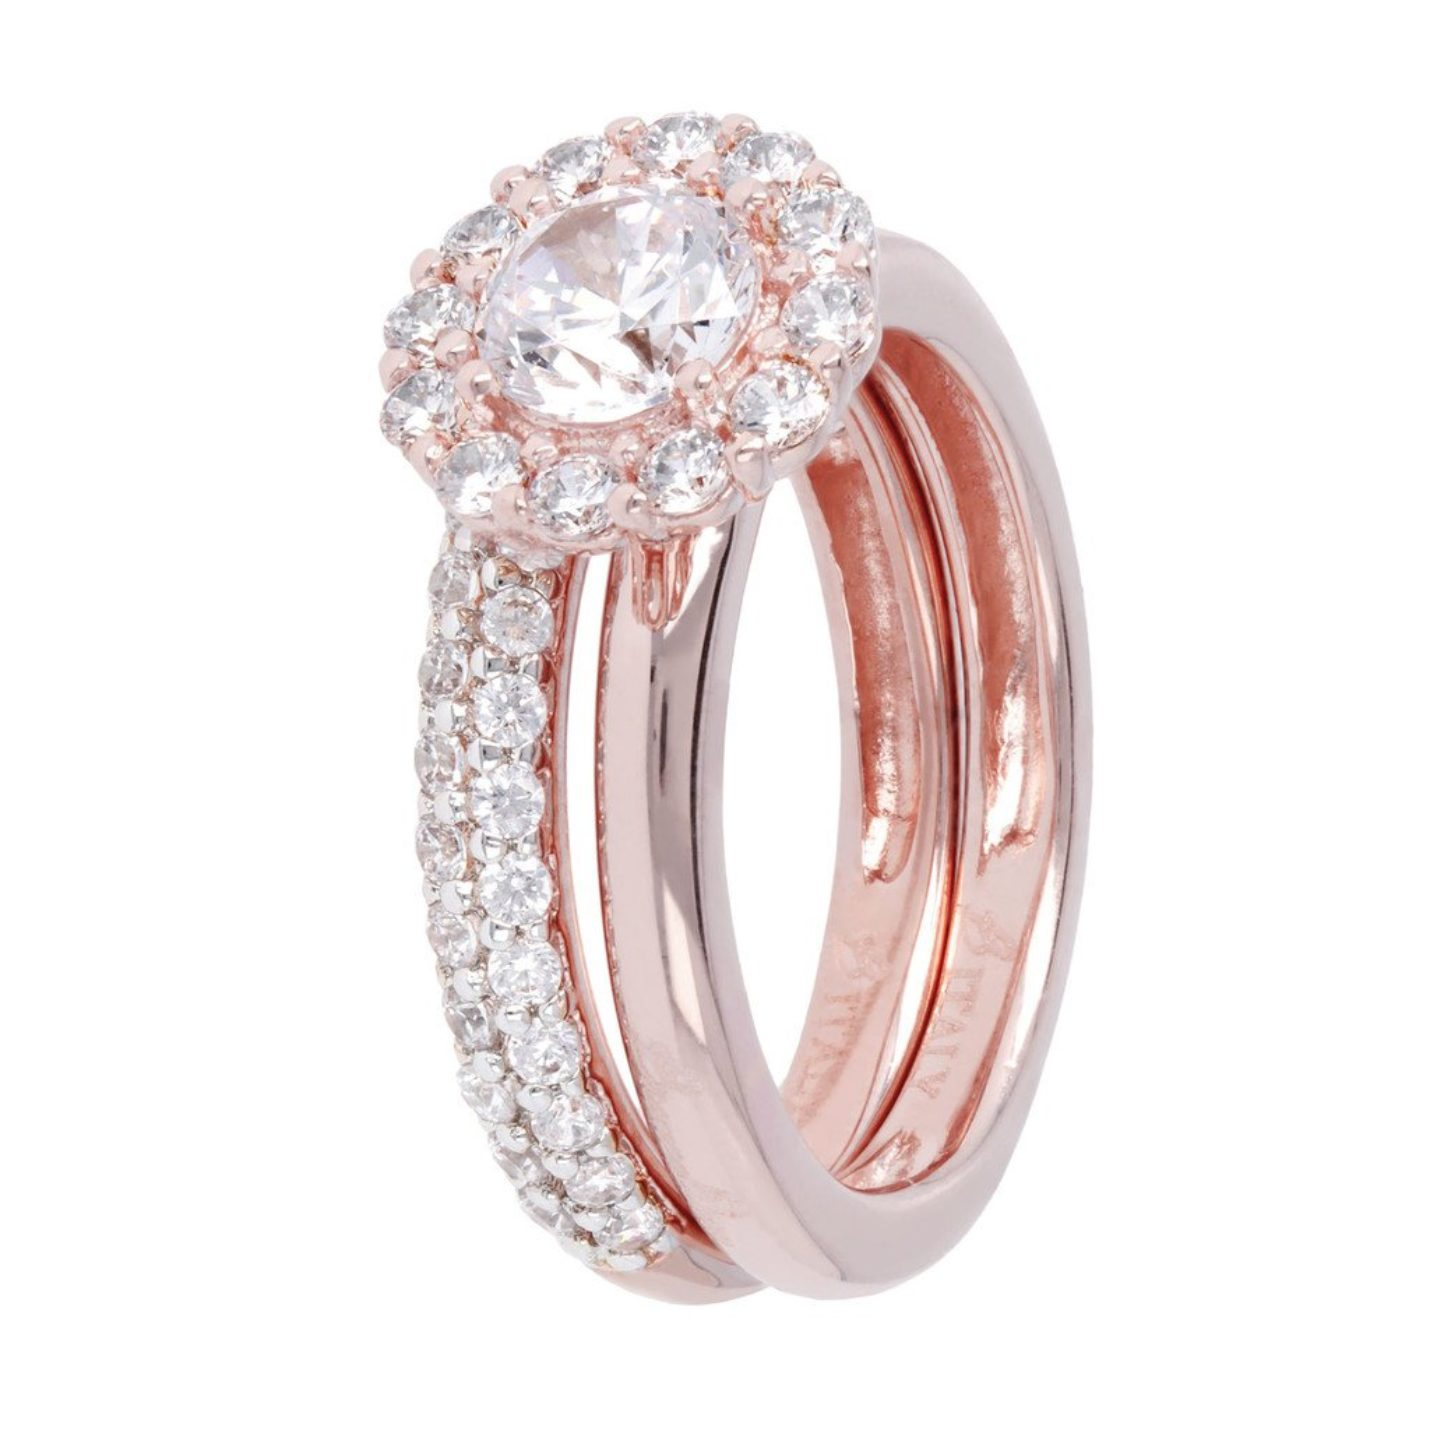 Bronzallure Rose Gold & CZ Ring Set